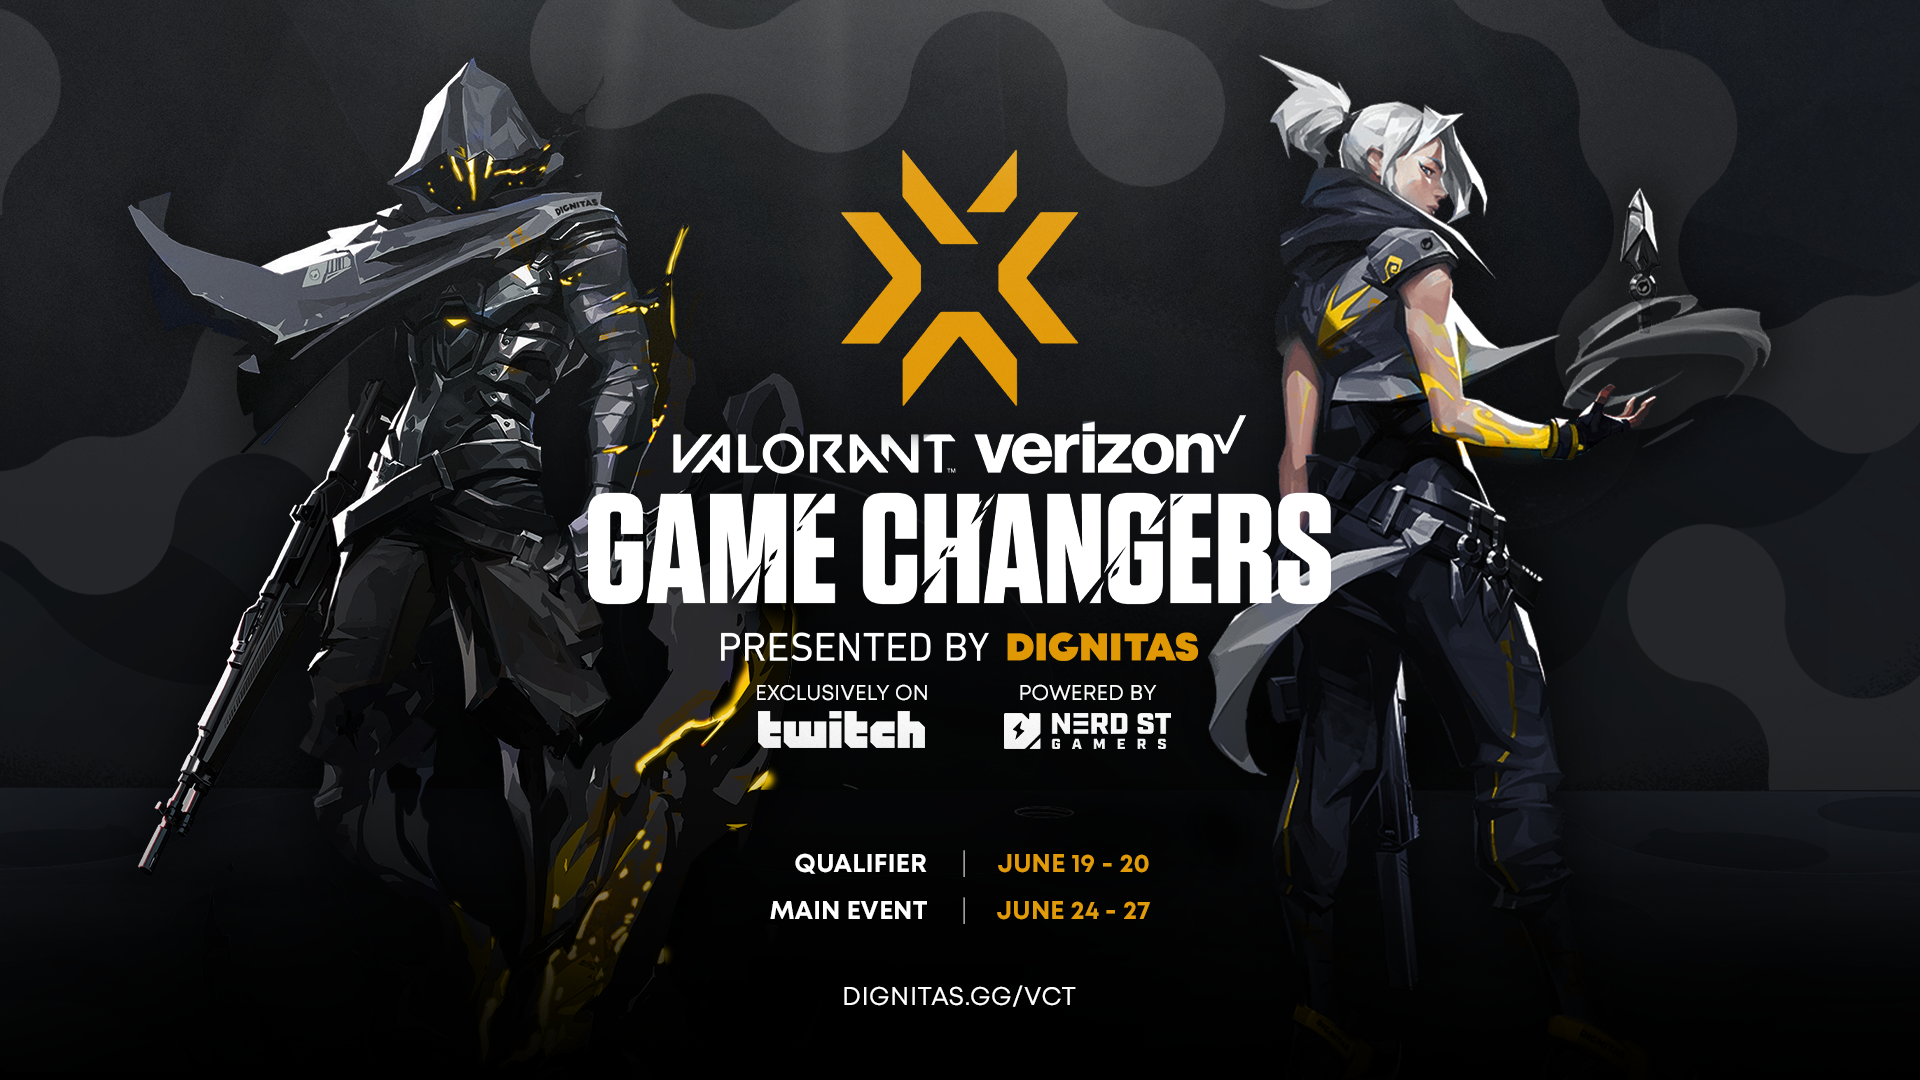 Dignitas, in collaboration with VERIZON, announces $50,000 all-women's VALORANT tournament, as part of VCT Game Changers Program